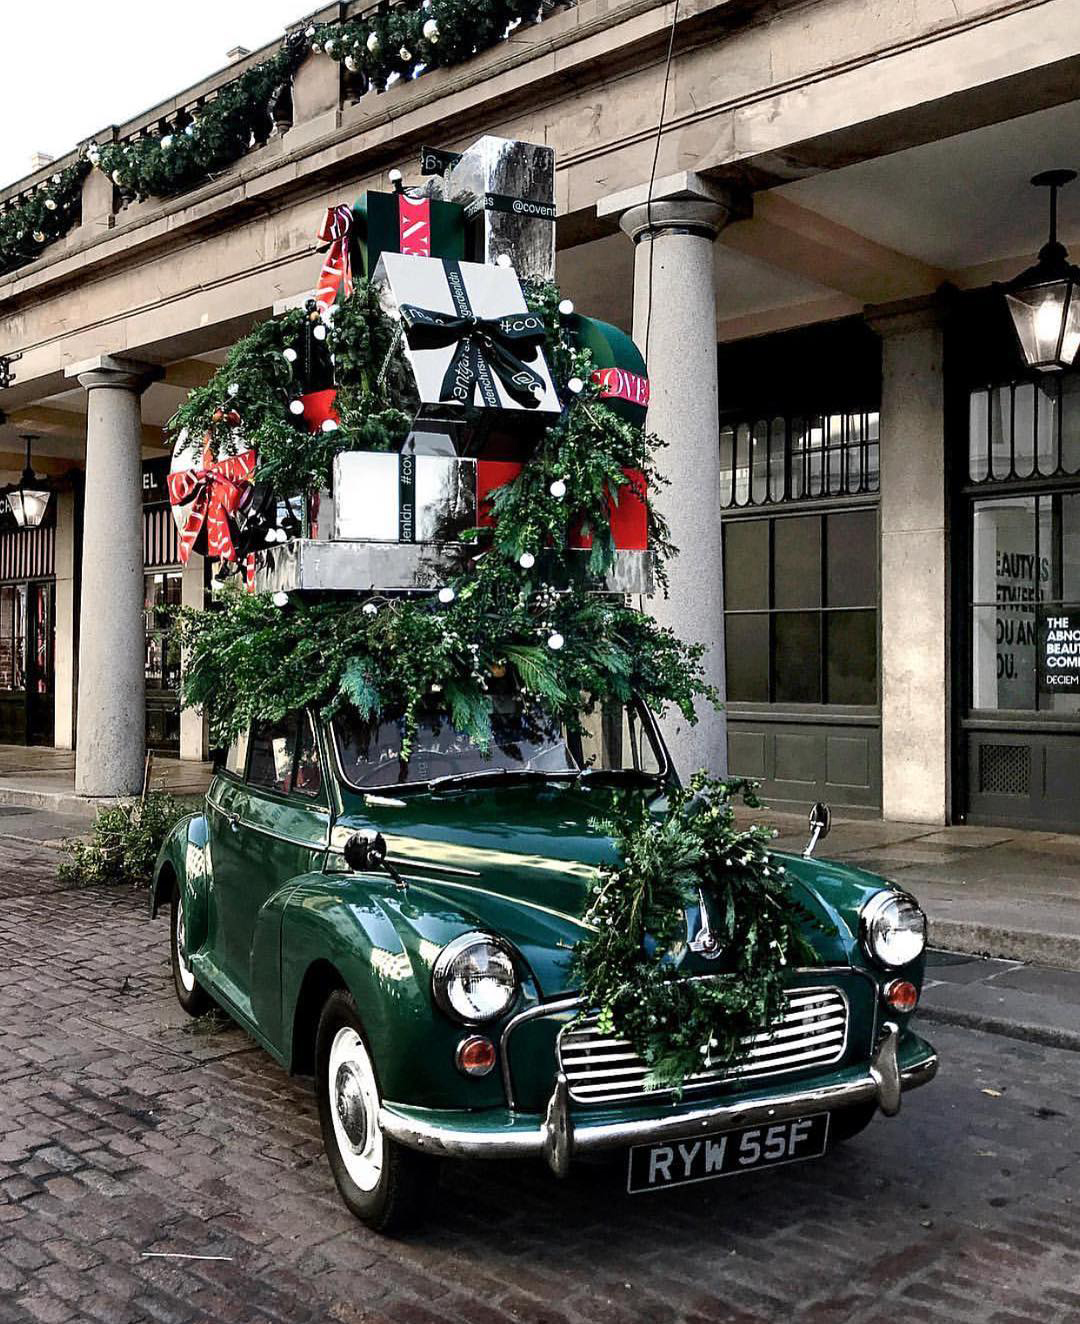 Christmas Gifts on a Car